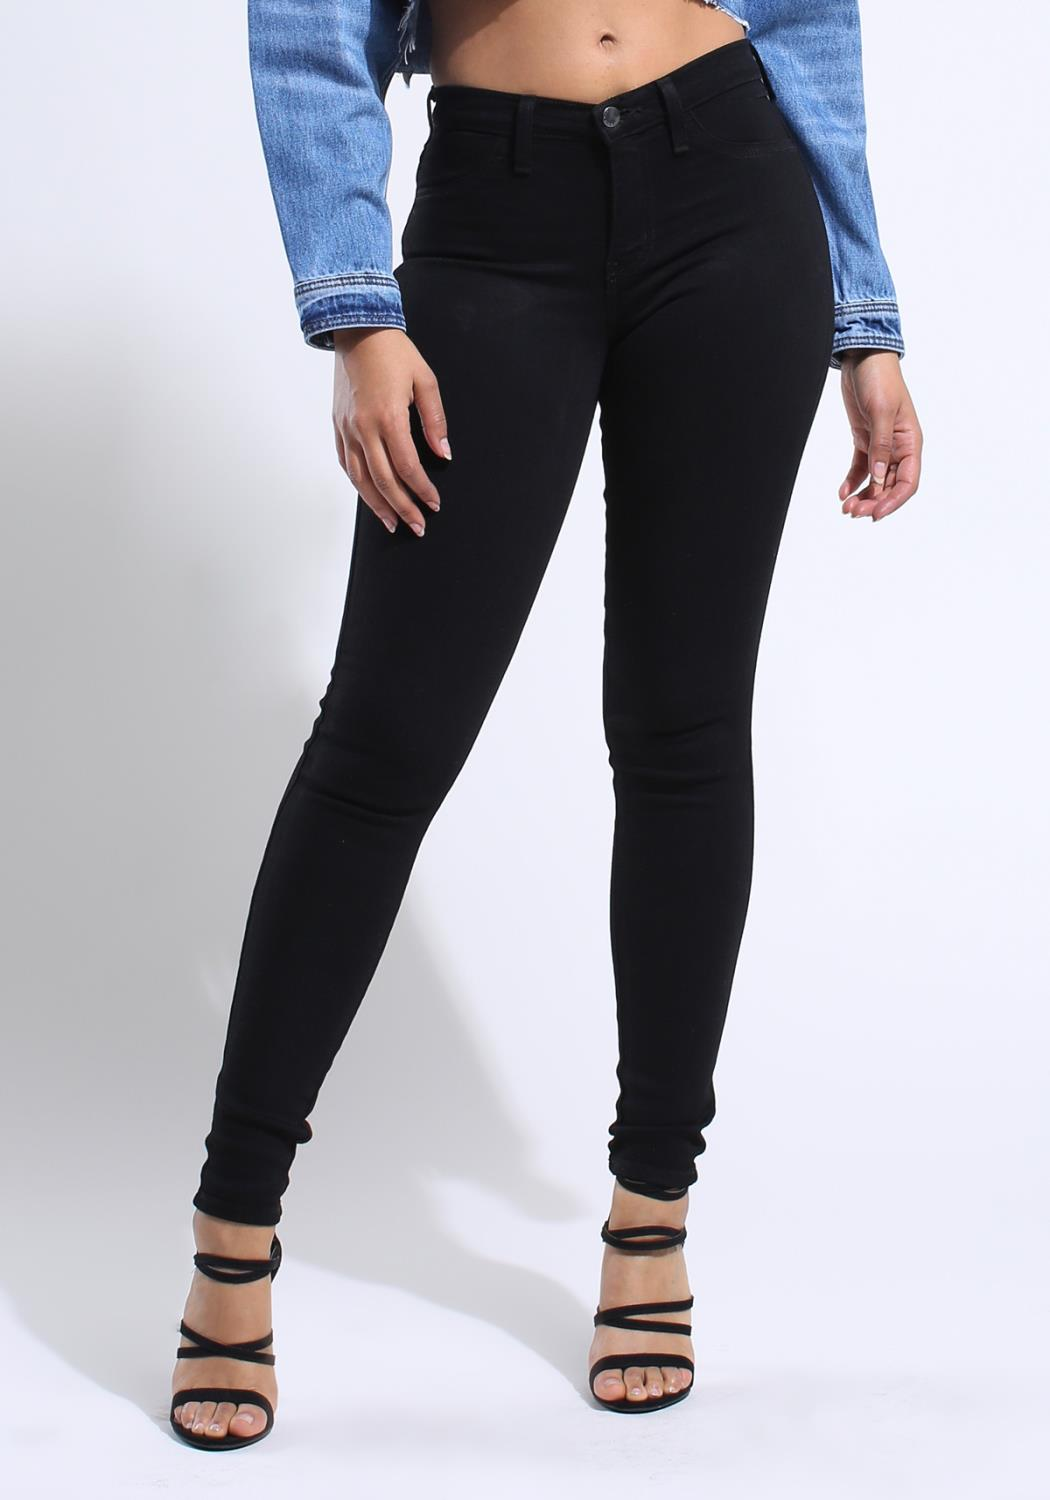 Everyday Uniform Black Jeans